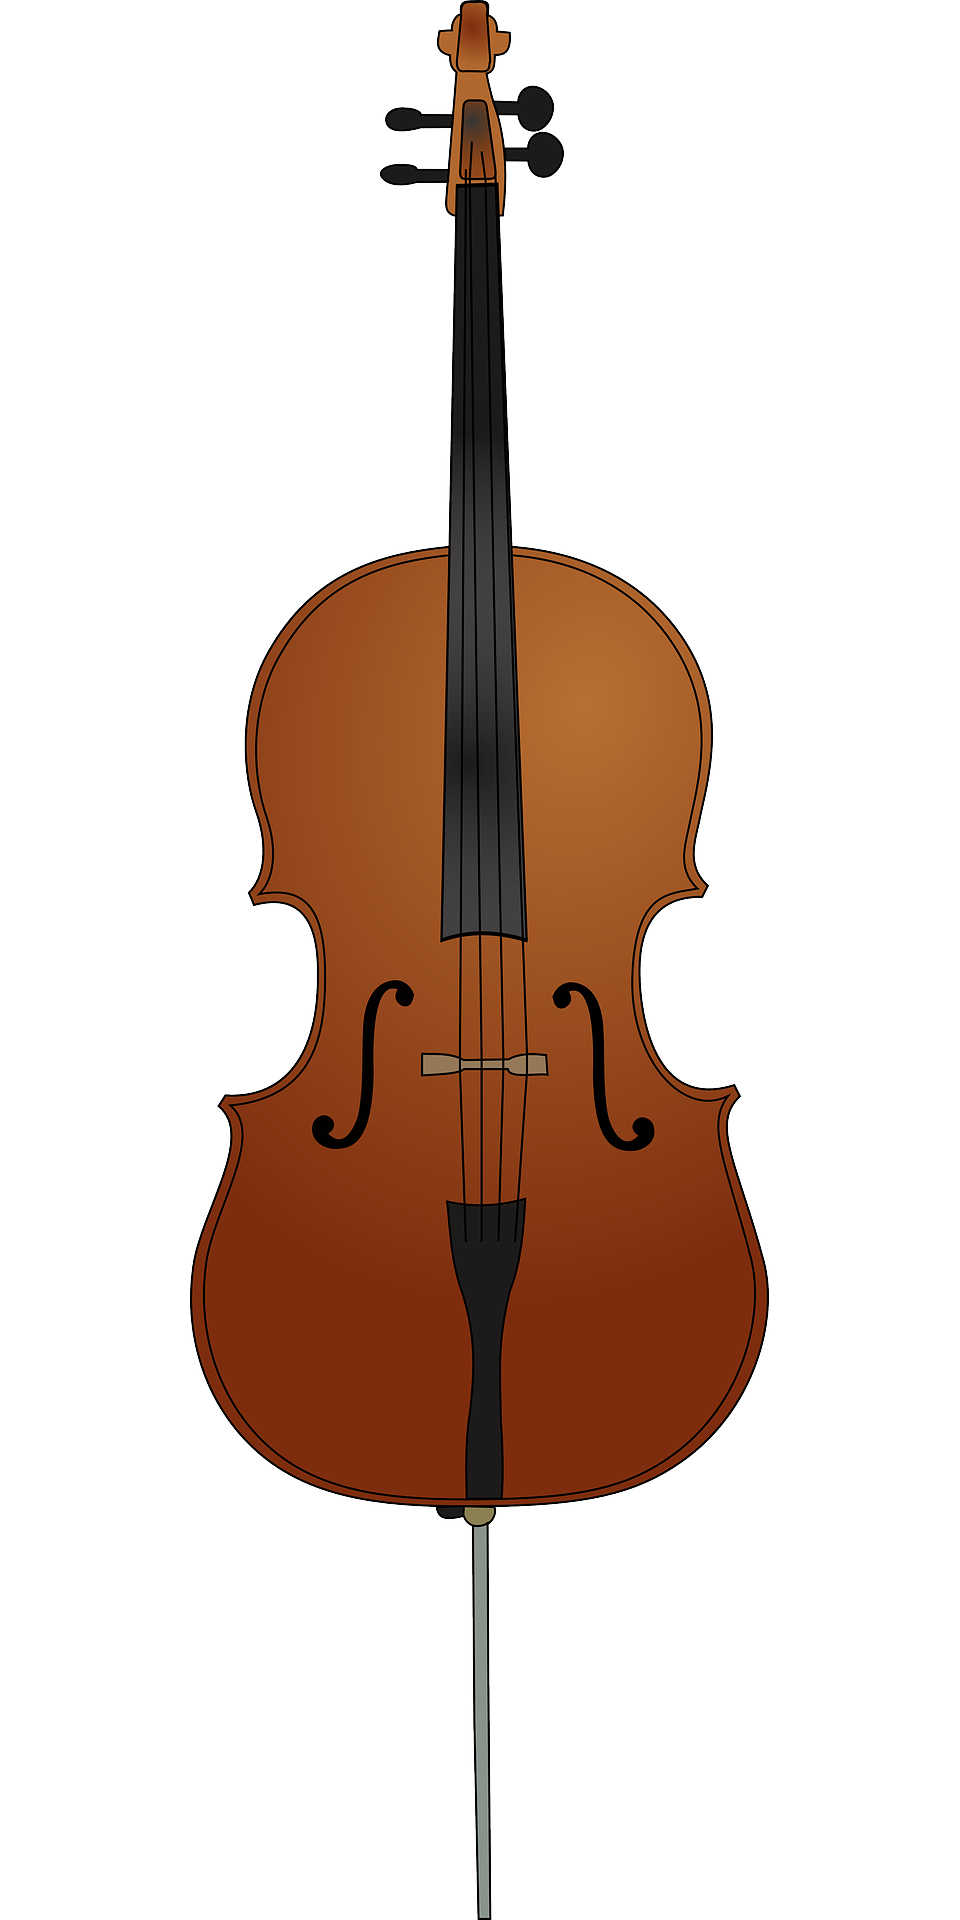 960x1920 Musical Instrument,brown Wooden Cello Vector Free Psd,vector,icons